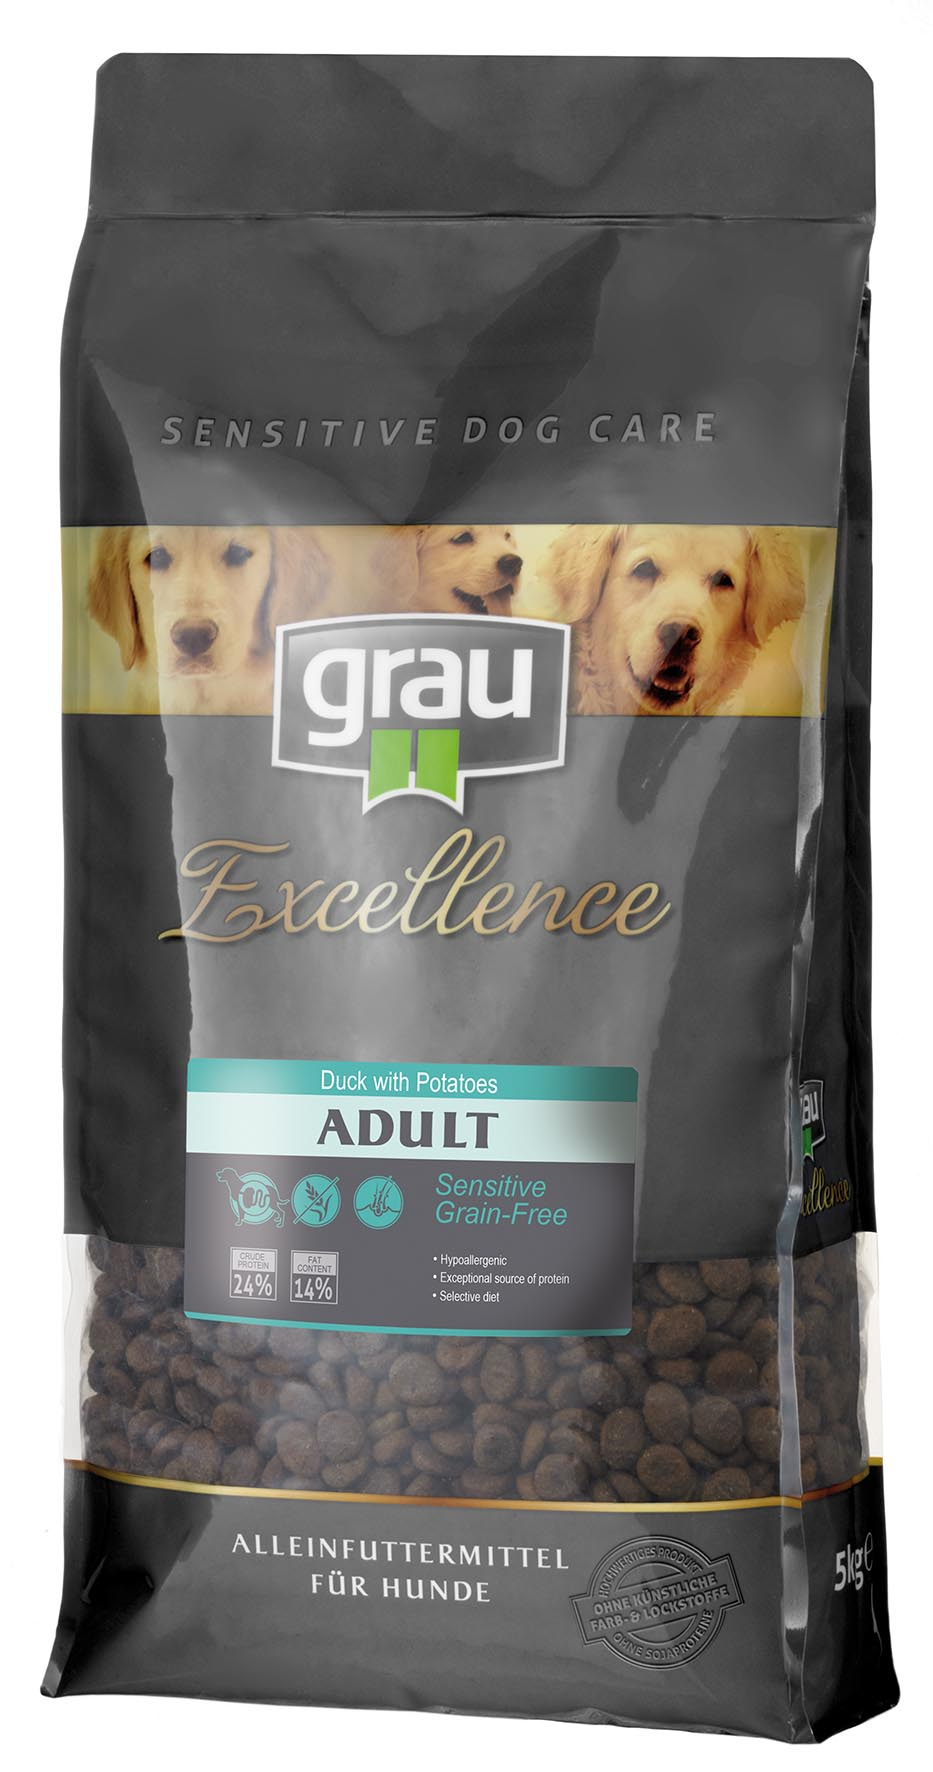 Grau Excellence Adult Sensitive Grain Free with Duck & Potatoes